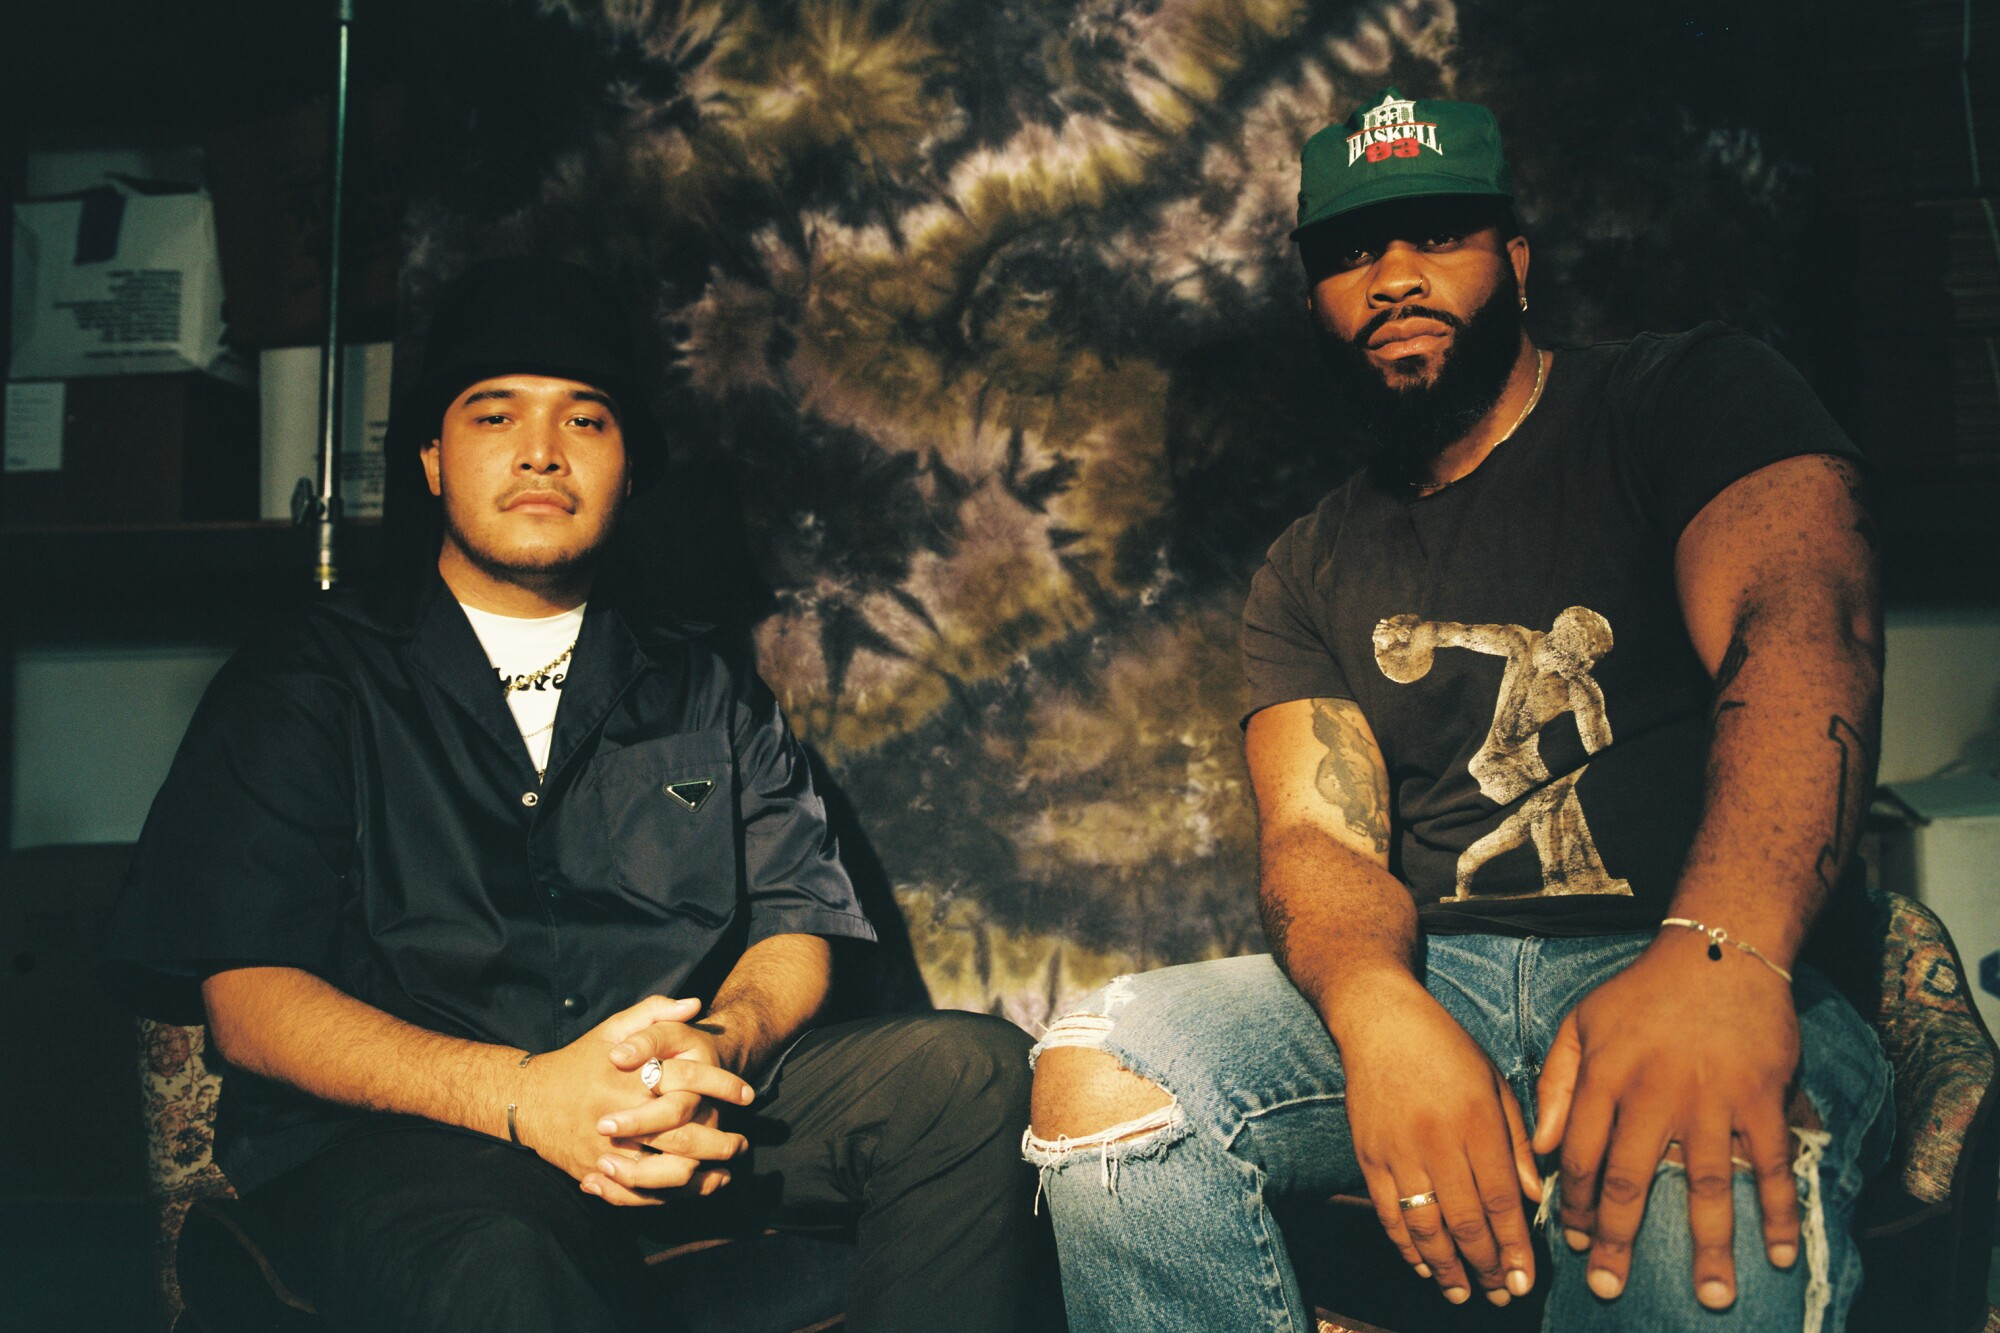 The co-founders of Kids of Immigrants at their studio. Daniel Buezo, left, and Weleh Dennis, right.